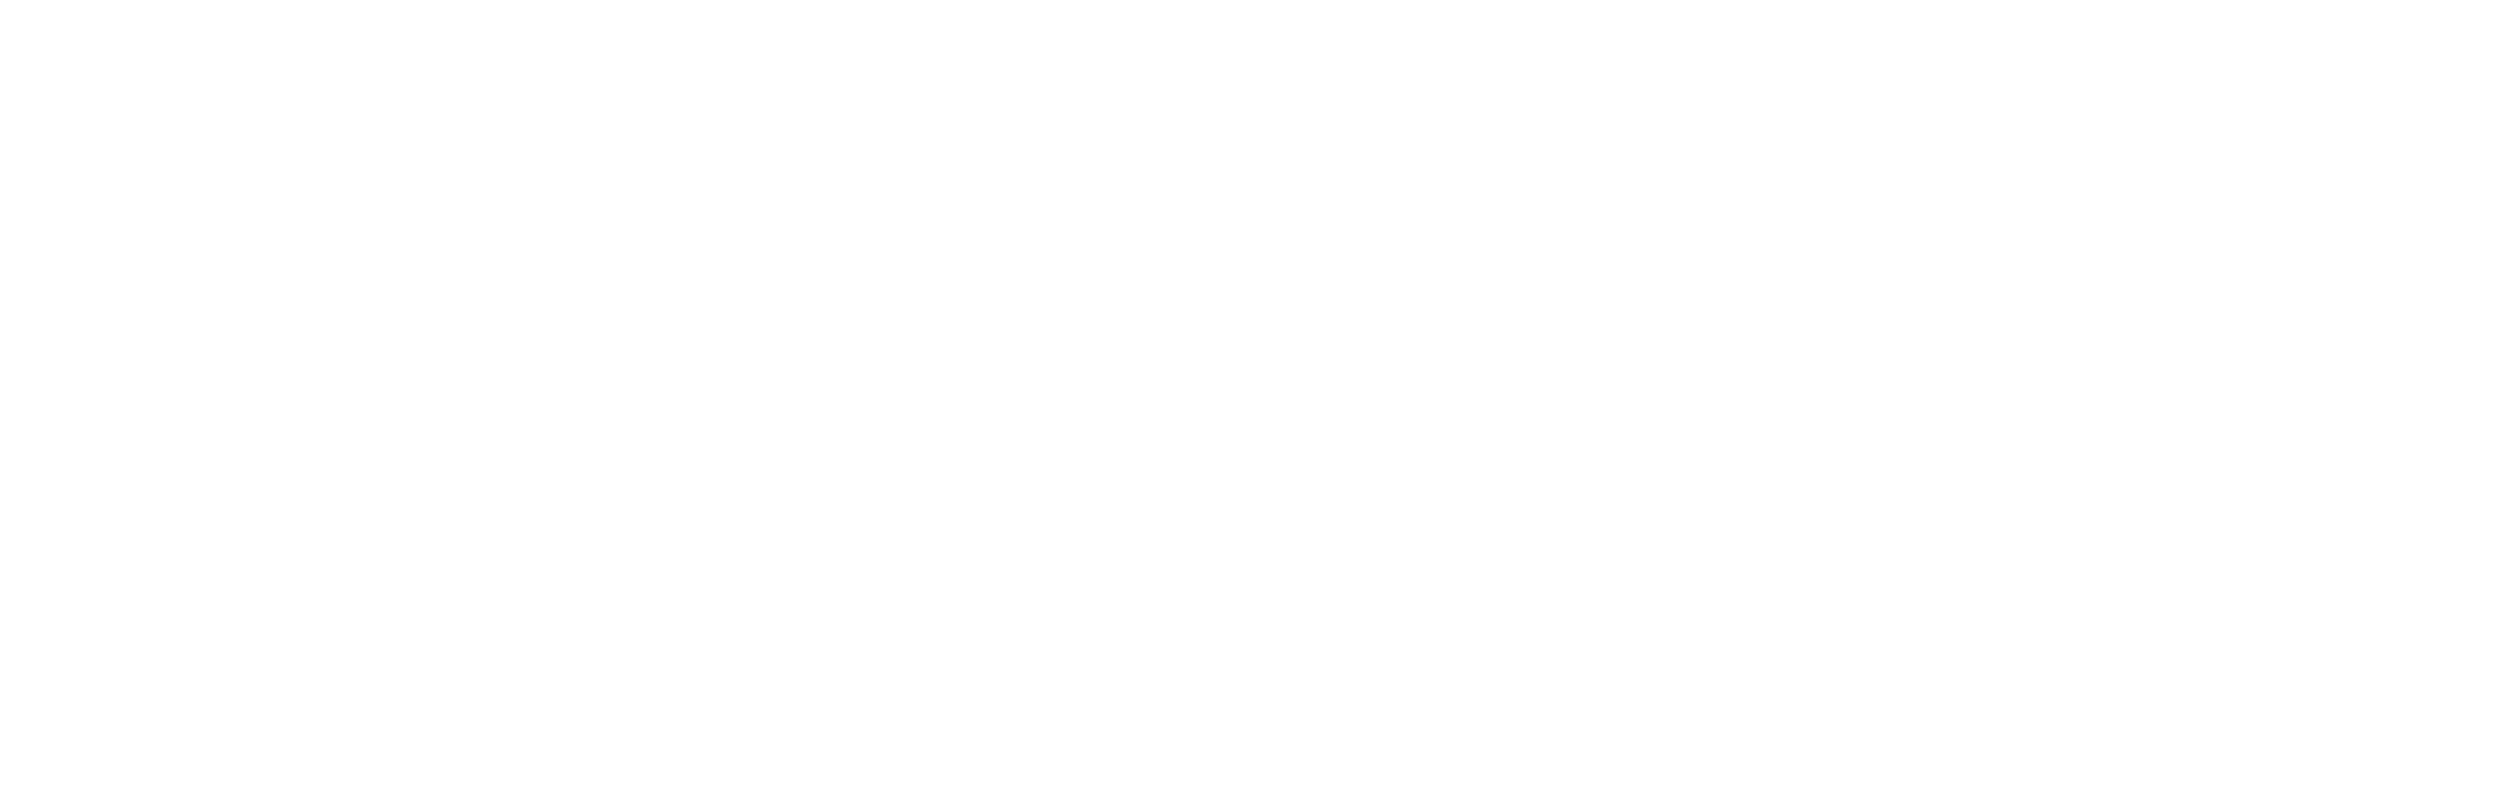 structure research_logo and text-simple-white.png